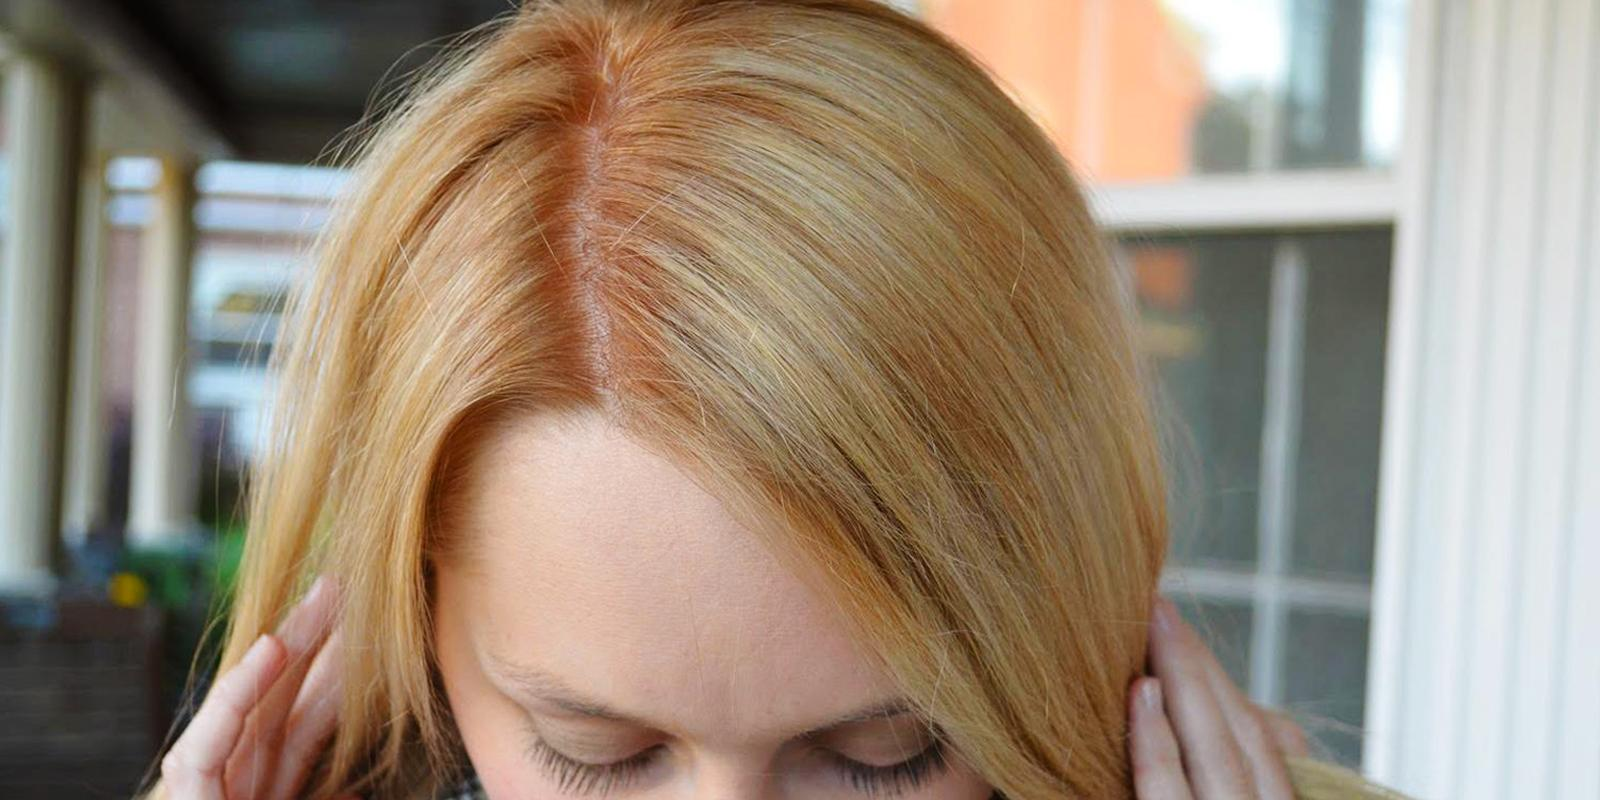 5 common hair color mistakes